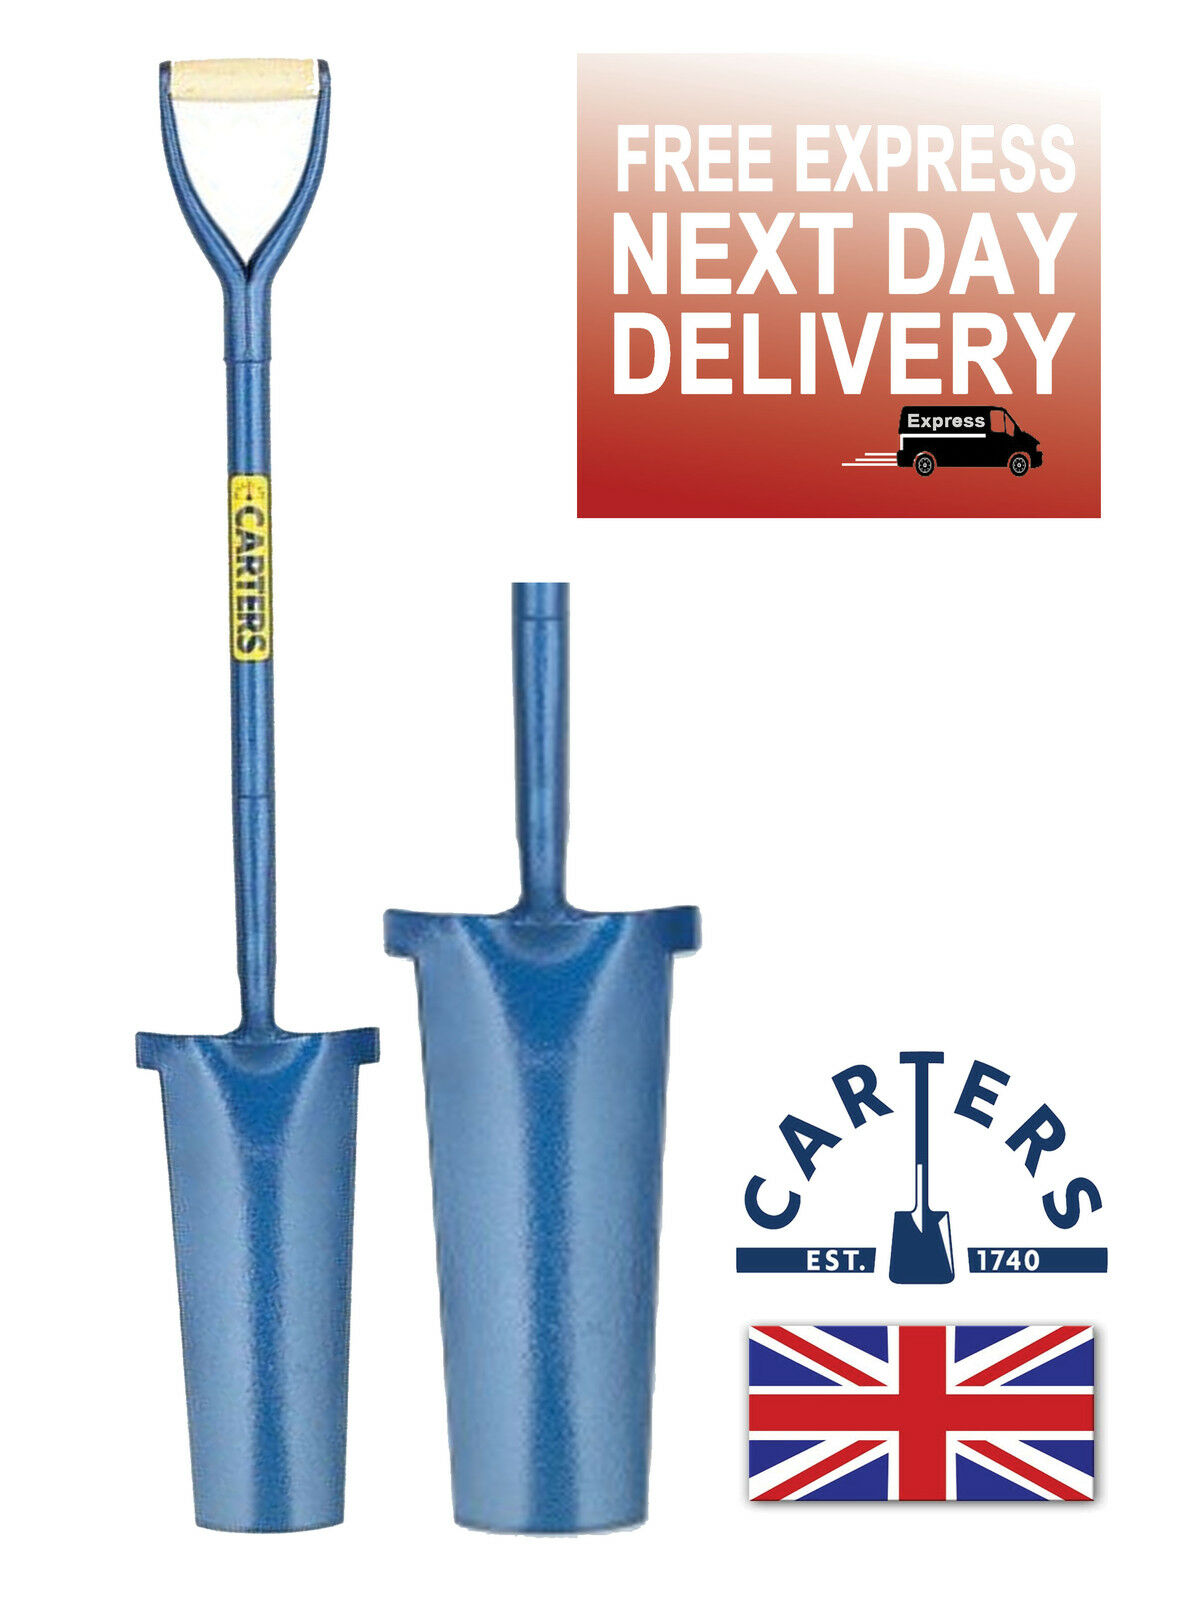 CARTERS PROFESSIONAL NEWCASTLE DRAINER GRAFTER POST DIGGING SHOVEL SPADE STEEL